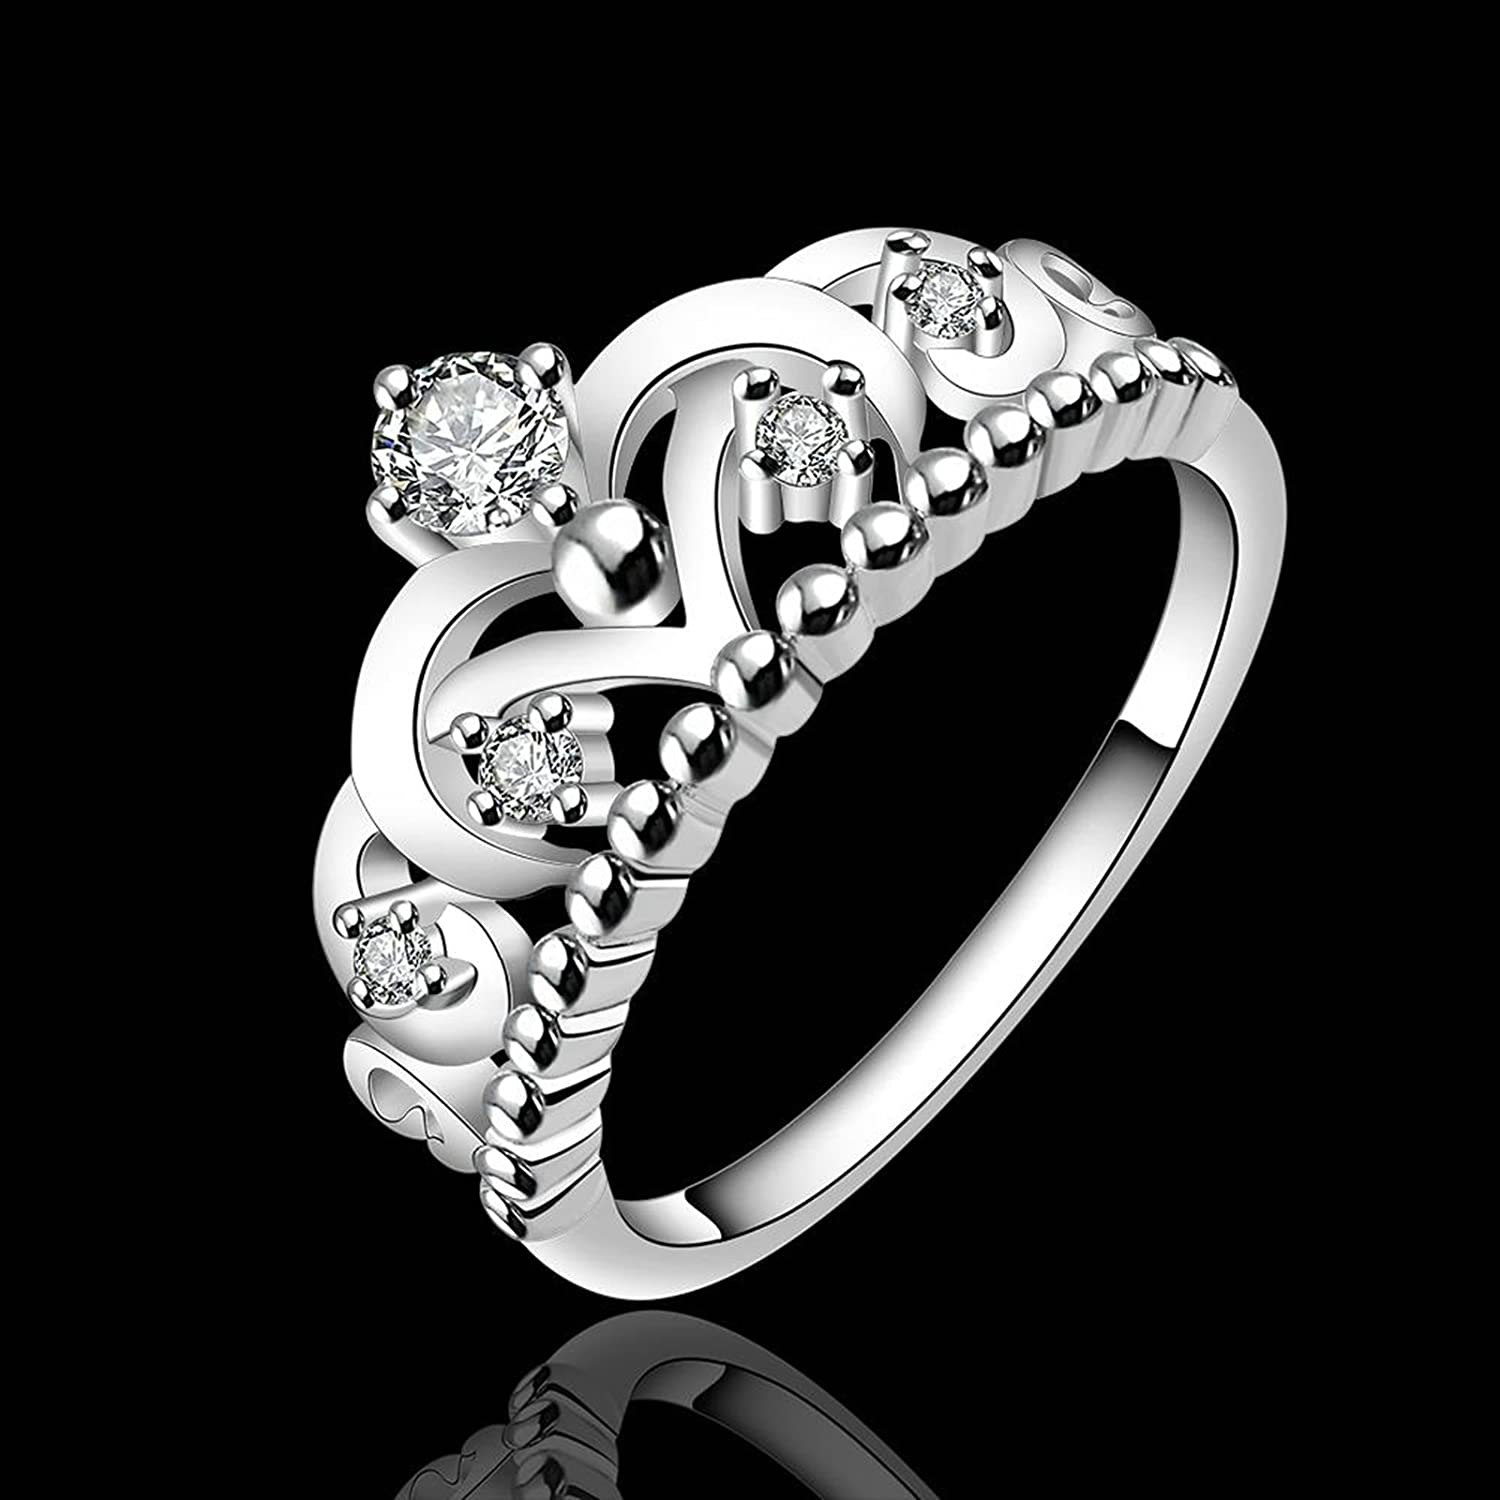 Gnzoe Fashion Jewelry Silver Plated Women Finger Rings Elegant Hollow Crown Form Wedding Band CZ Zircon